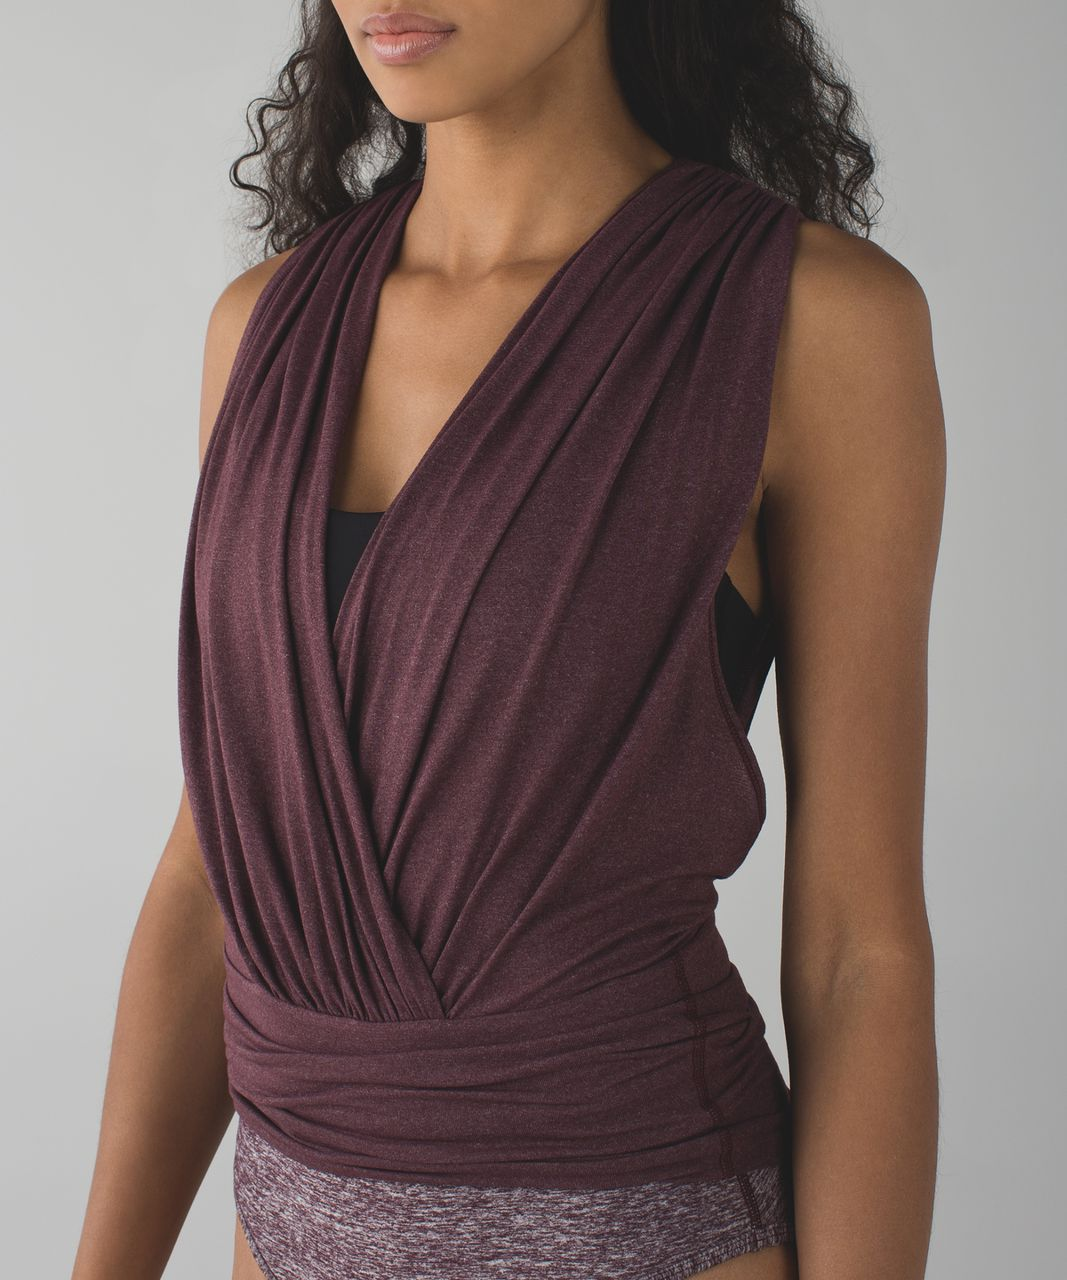 Lululemon Tonight's The Night Leotard - Heathered Bordeaux Drama